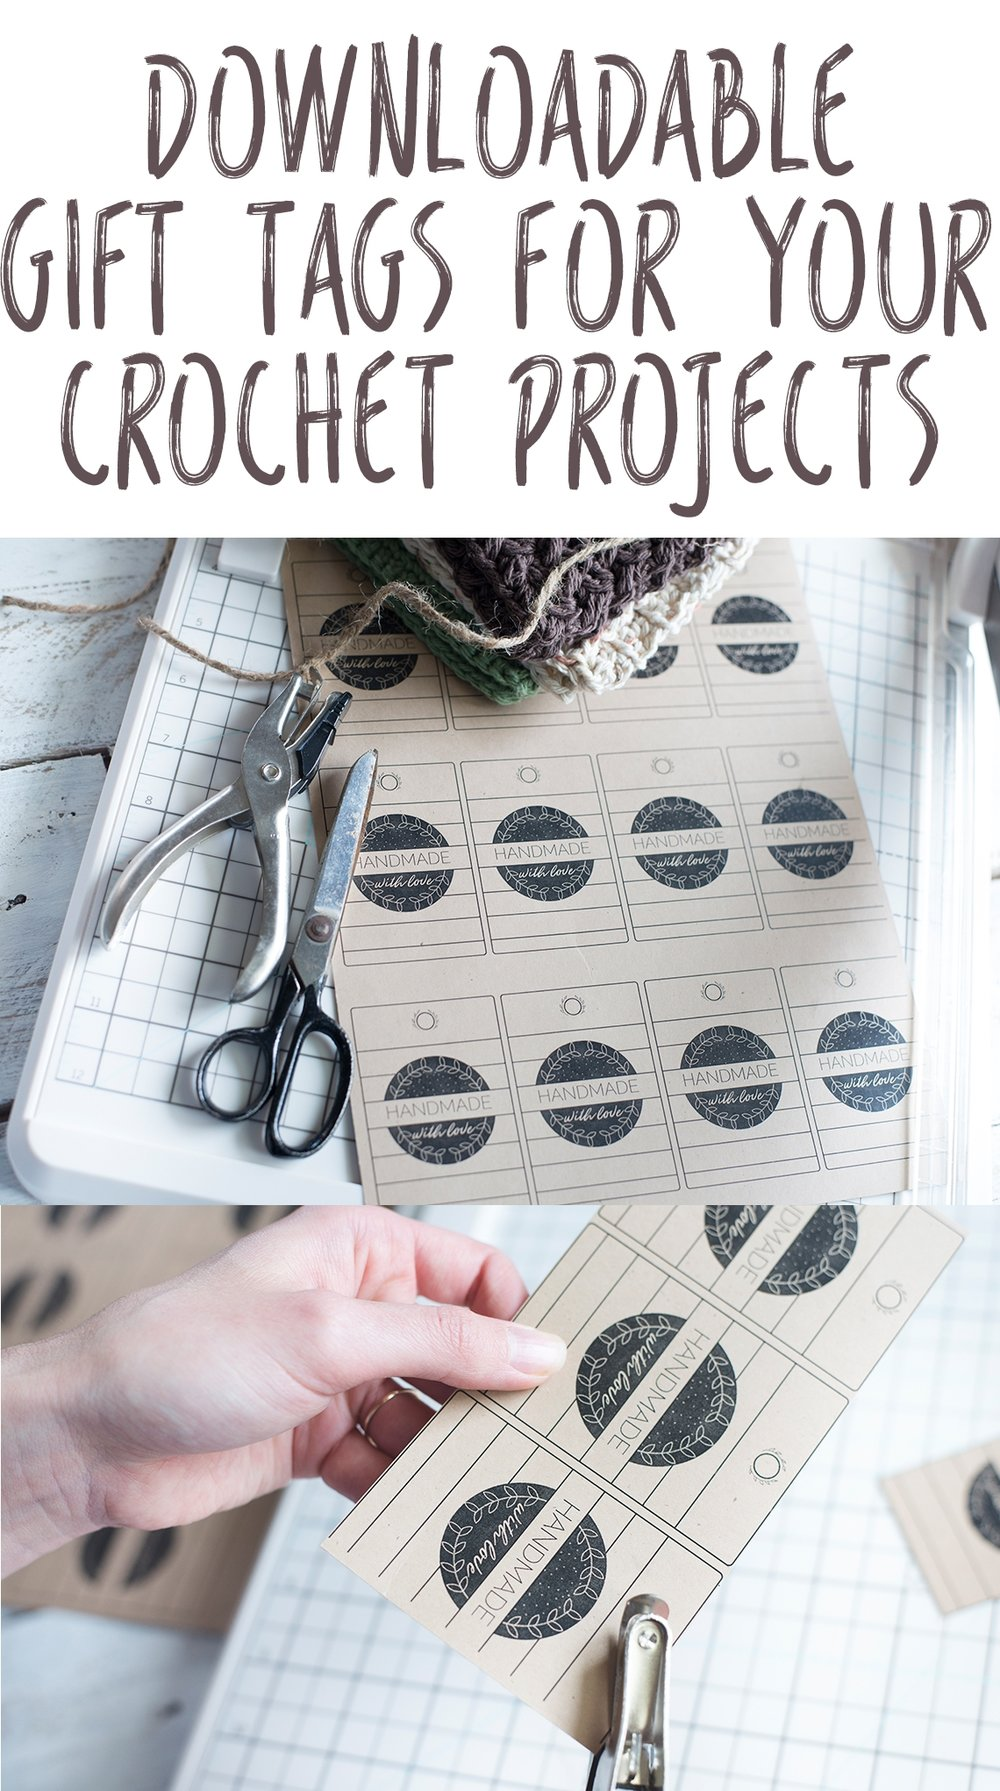 Click here to download free gift tags for your projects